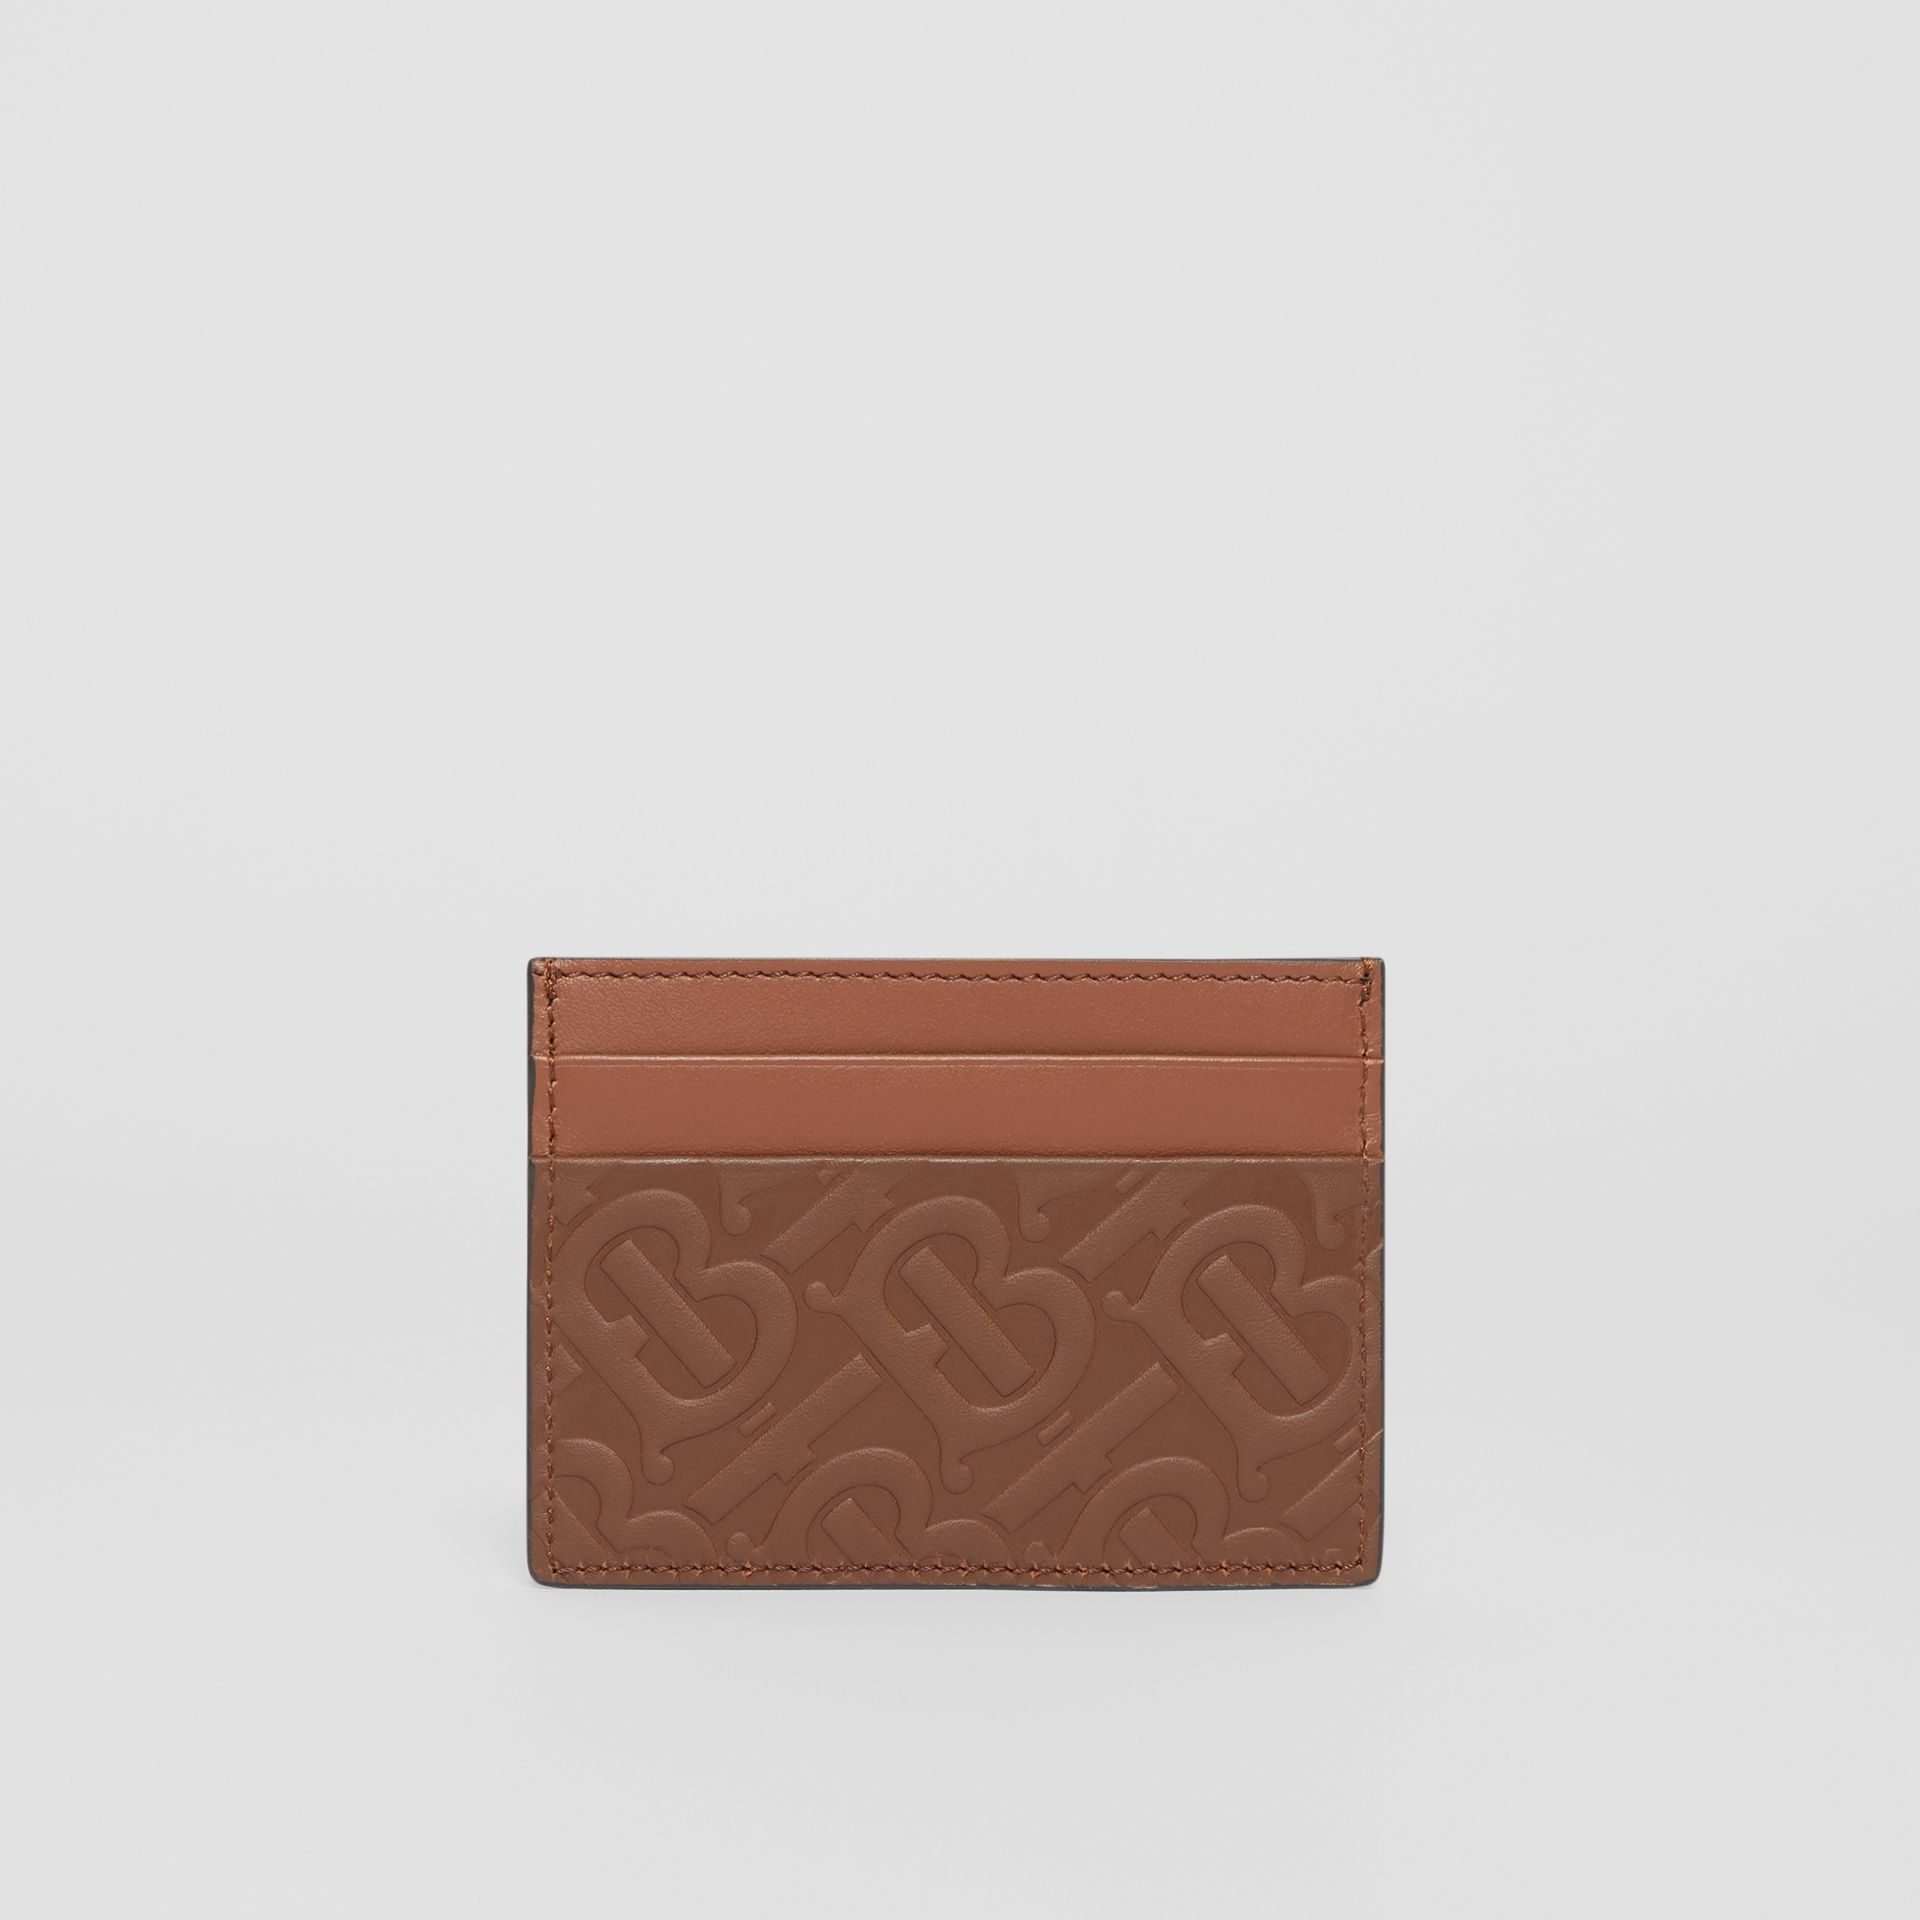 Monogram Leather Card Case in Dark Tan - Men | Burberry Canada - gallery image 4